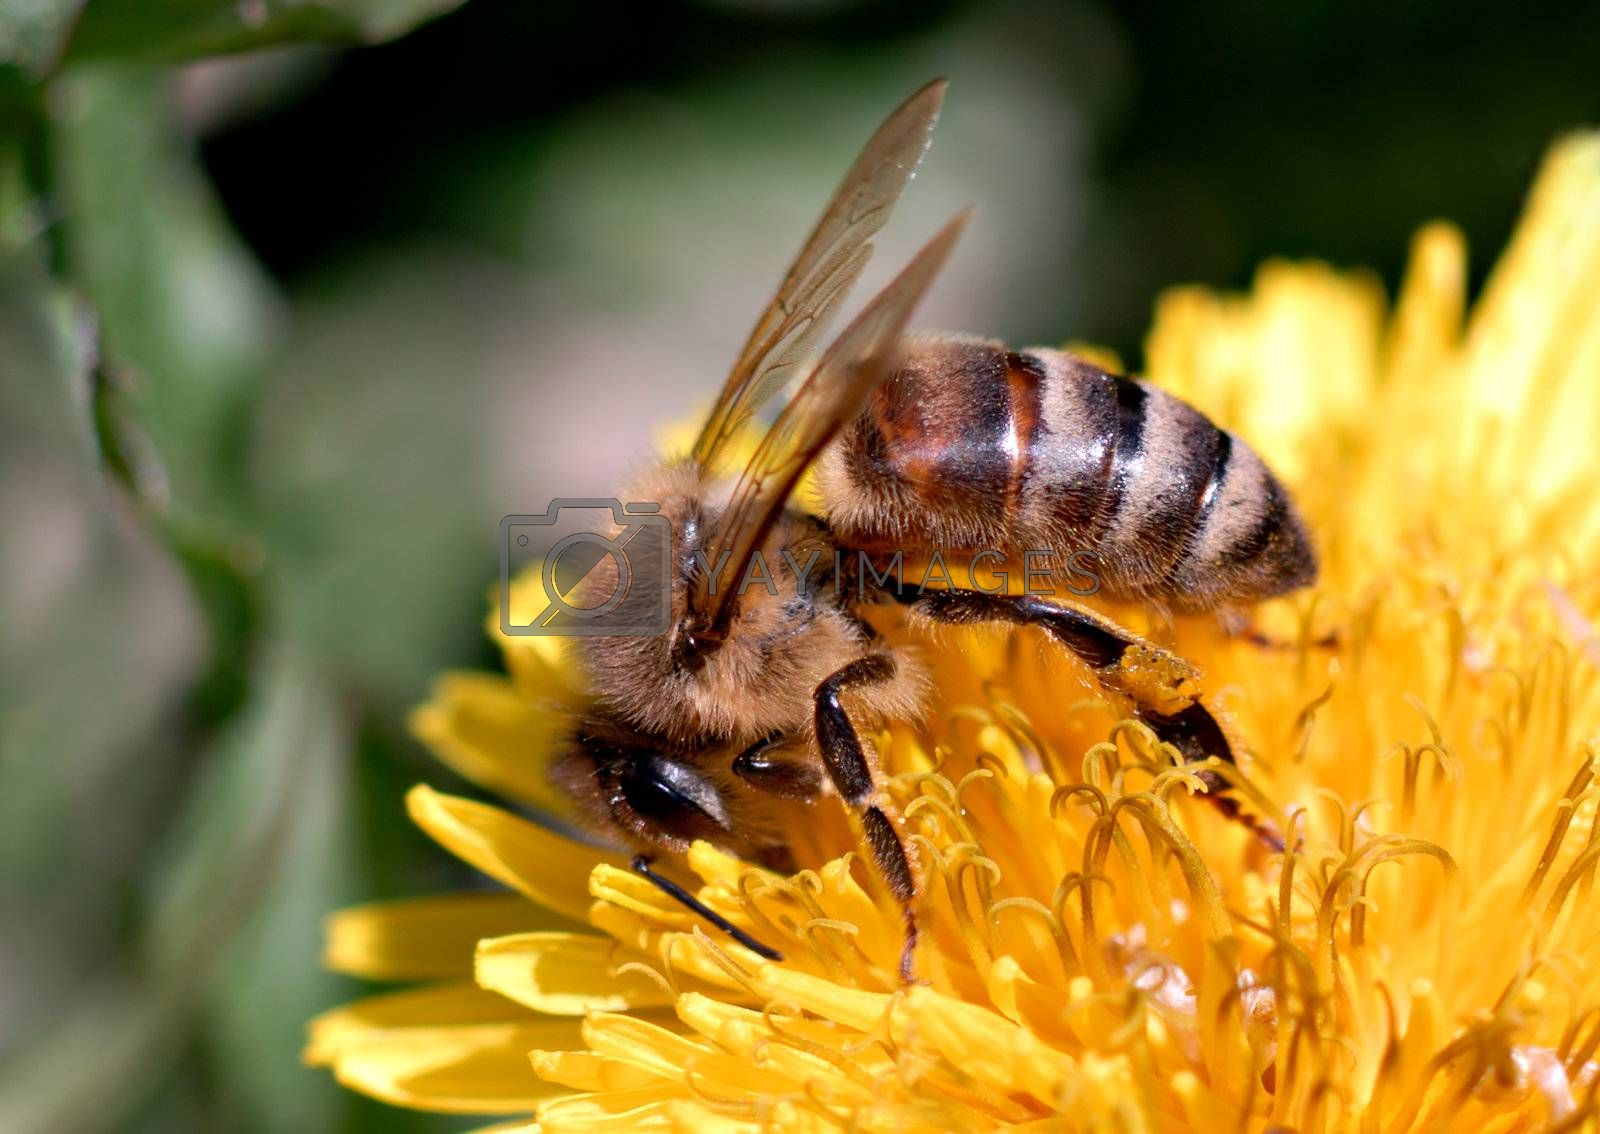 A honeybee searches for food on a dandelion. Macro shot.